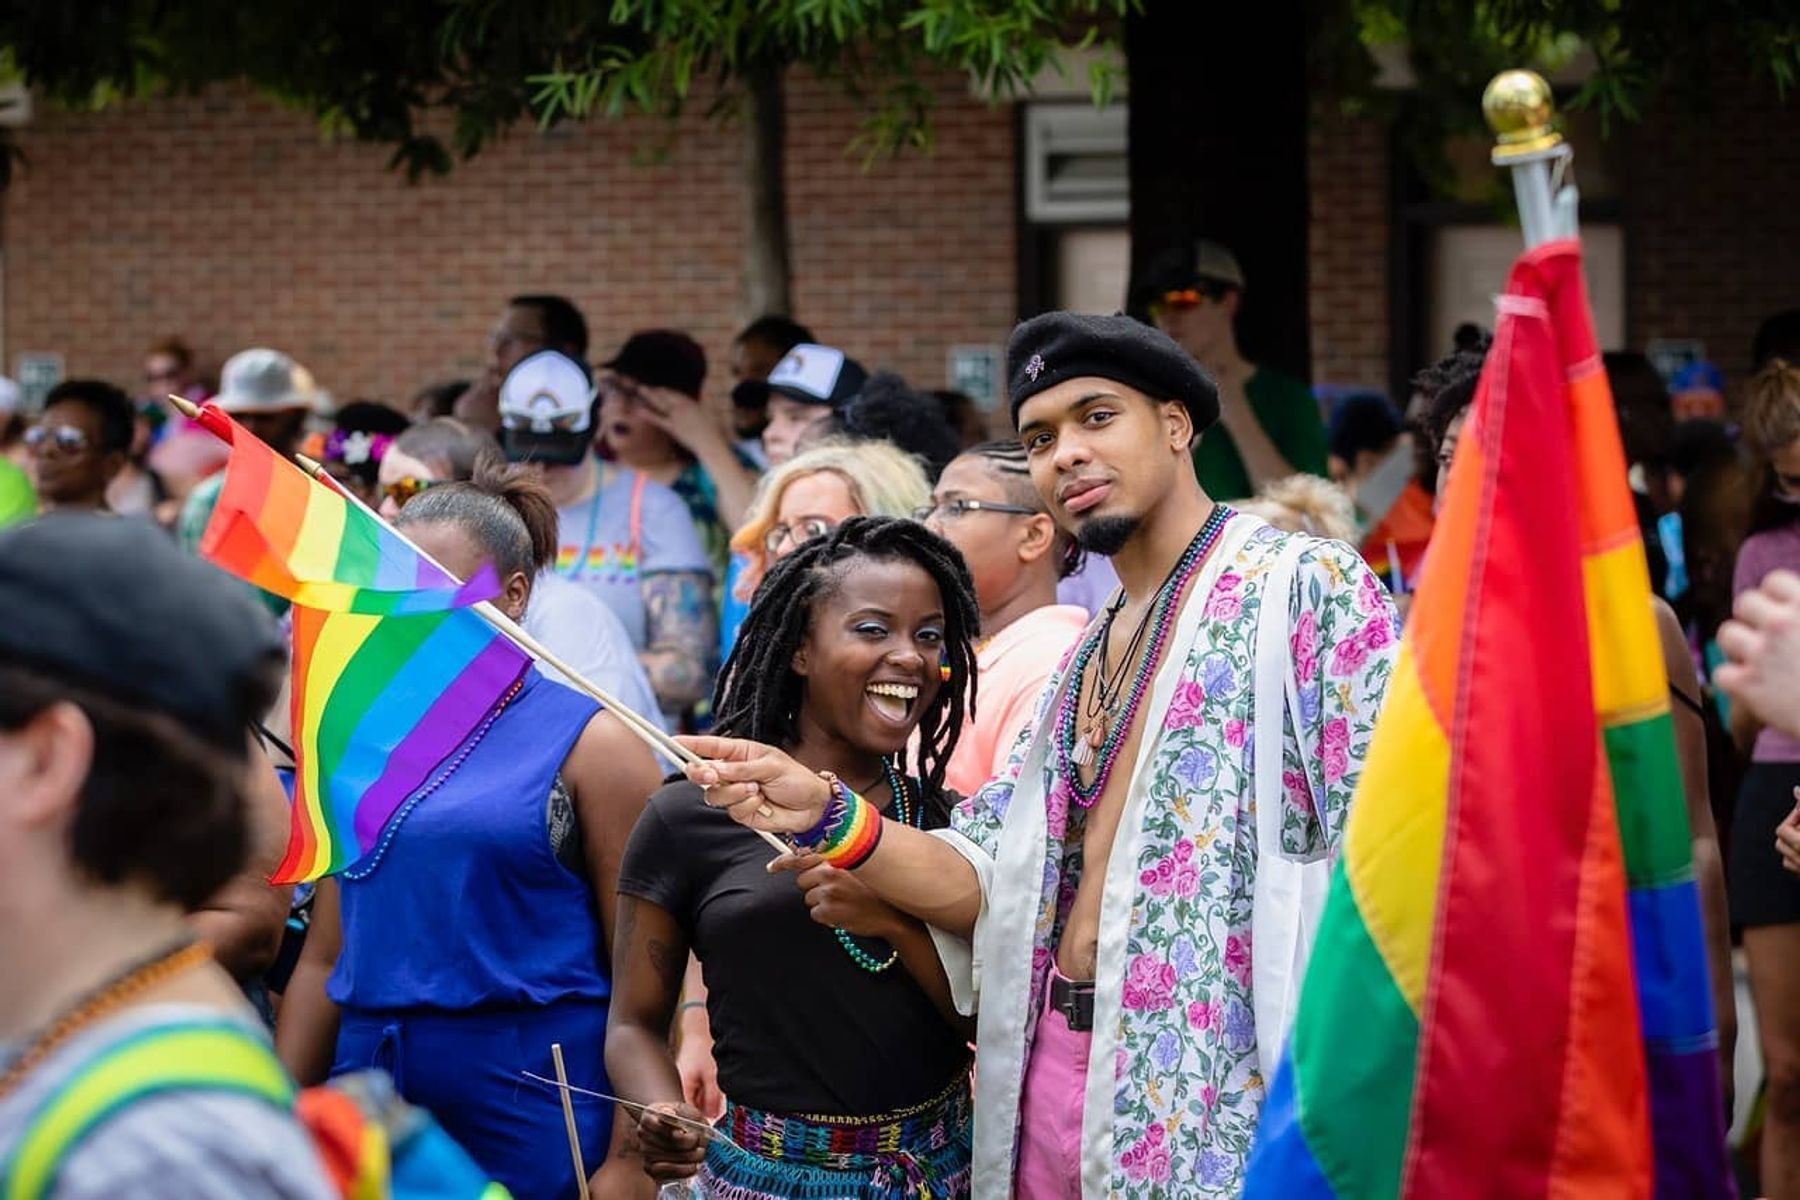 Two people celebrating Pride in Augusta, holding rainbow Pride flags.